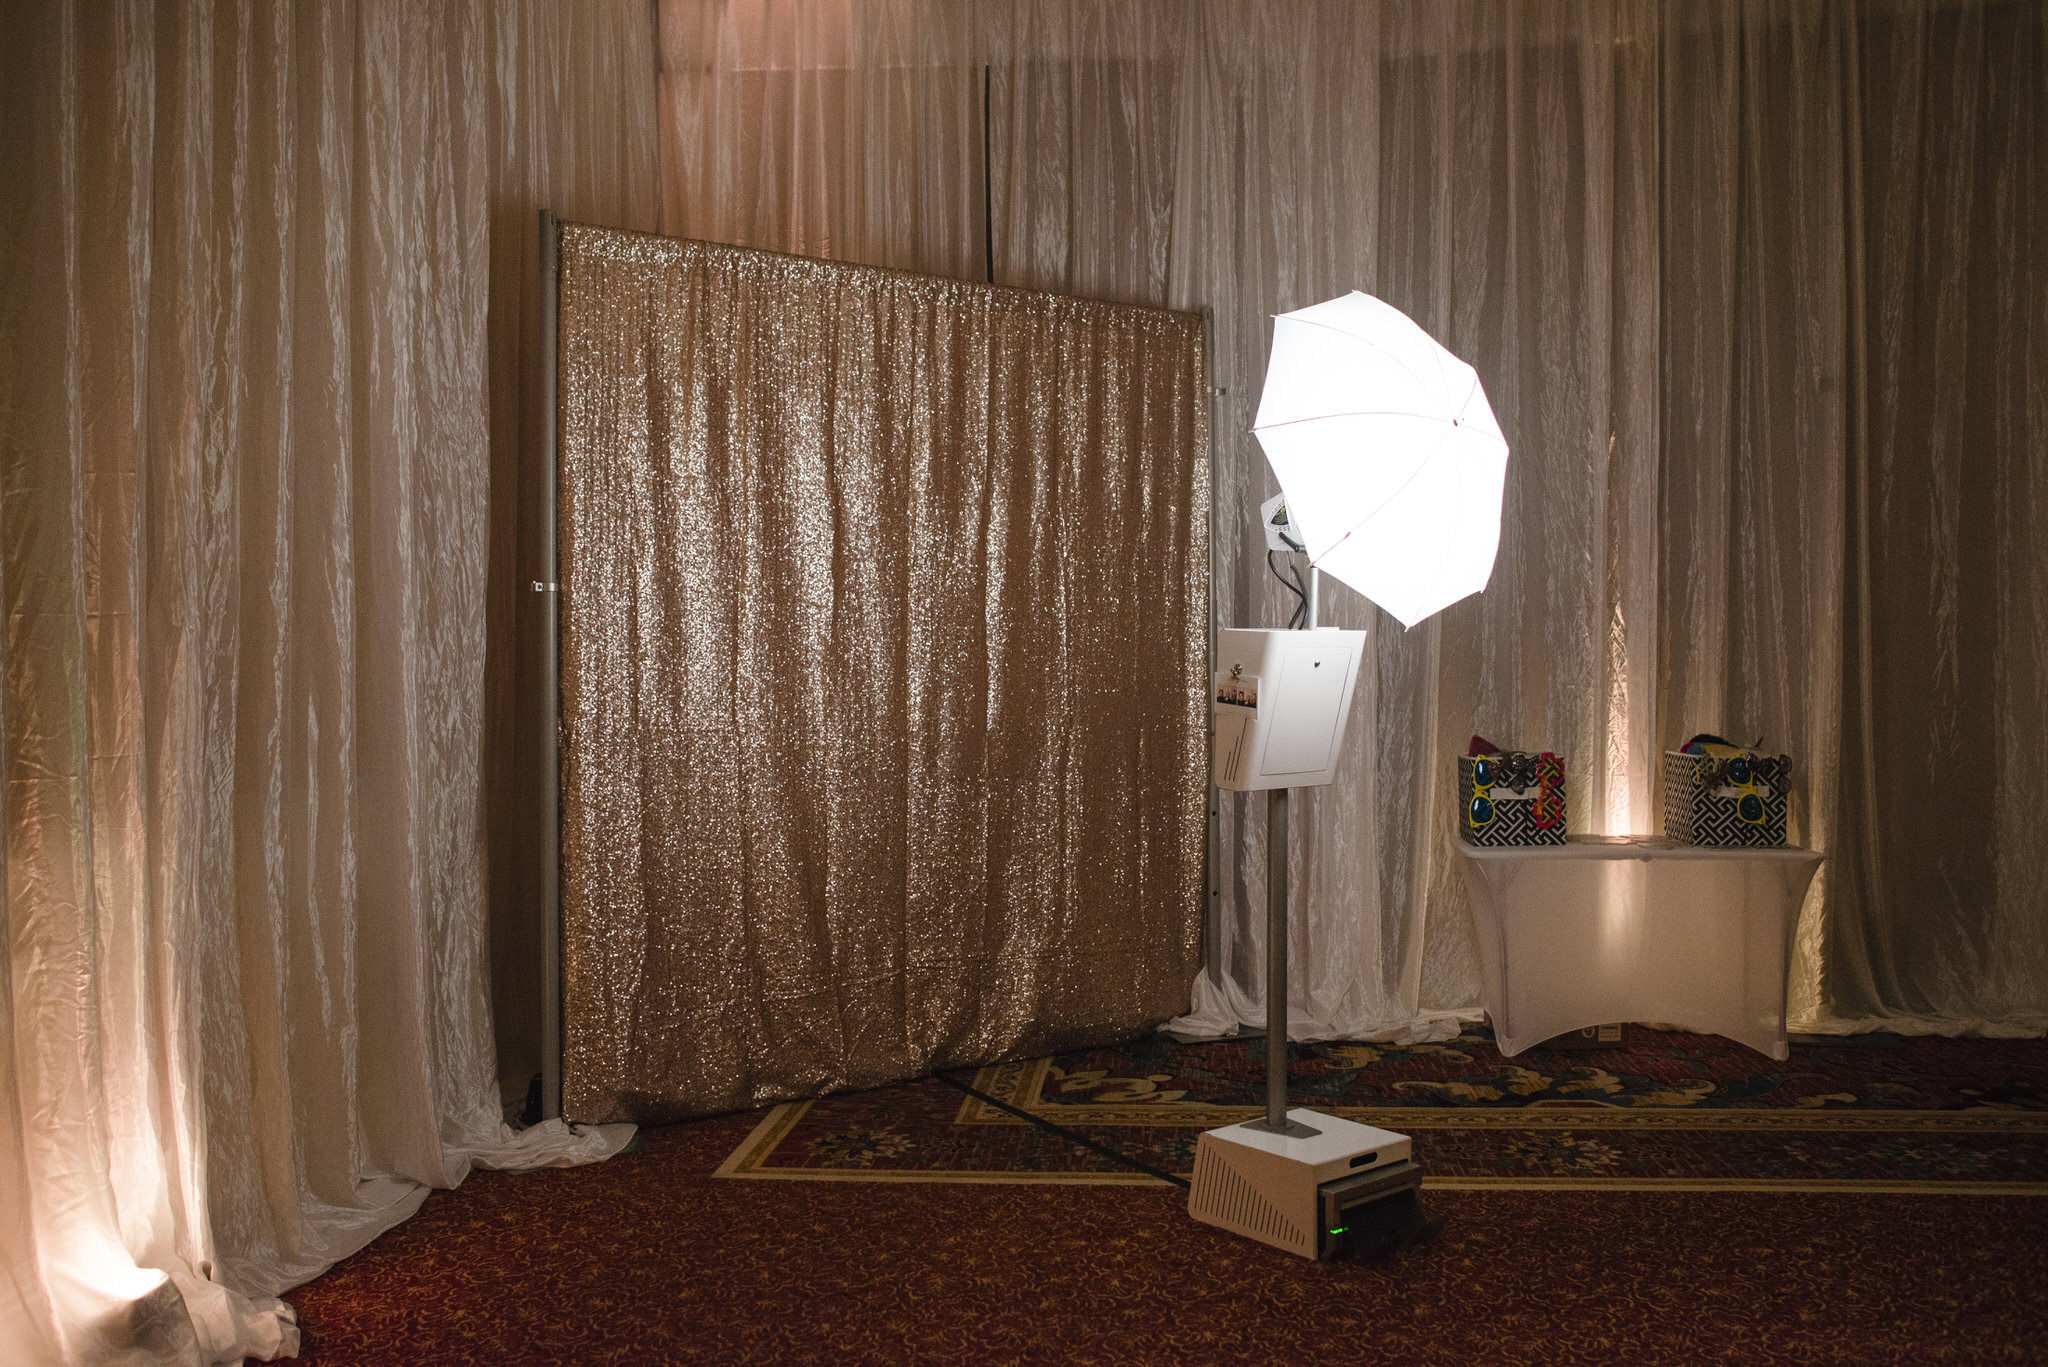 Boothy photo booth at the Ritz Carlton Naples Beach Resort